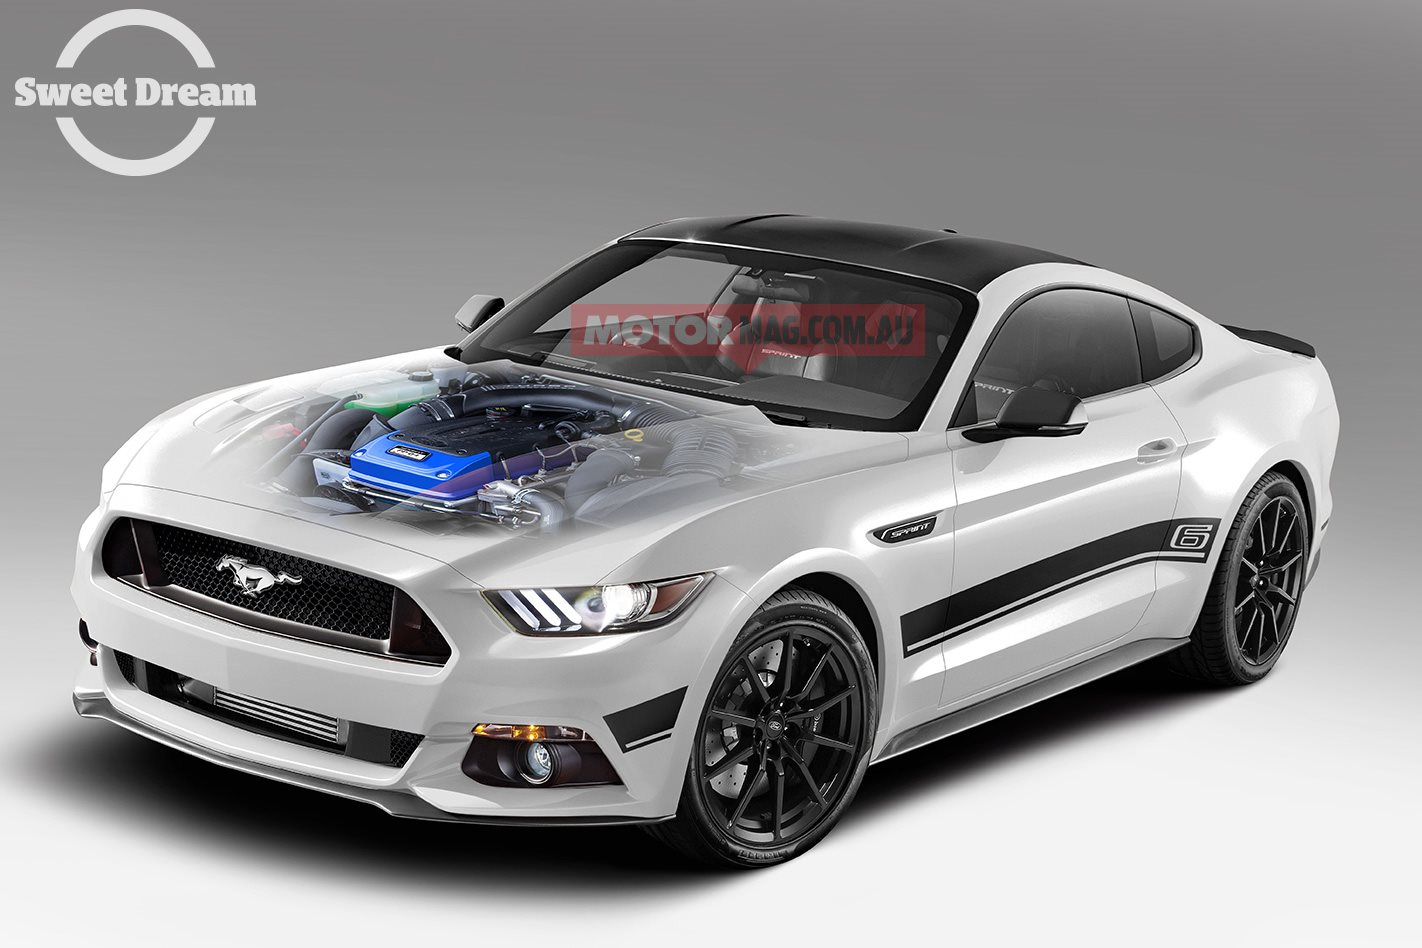 Ford Mustang Barra: Sweet Dream